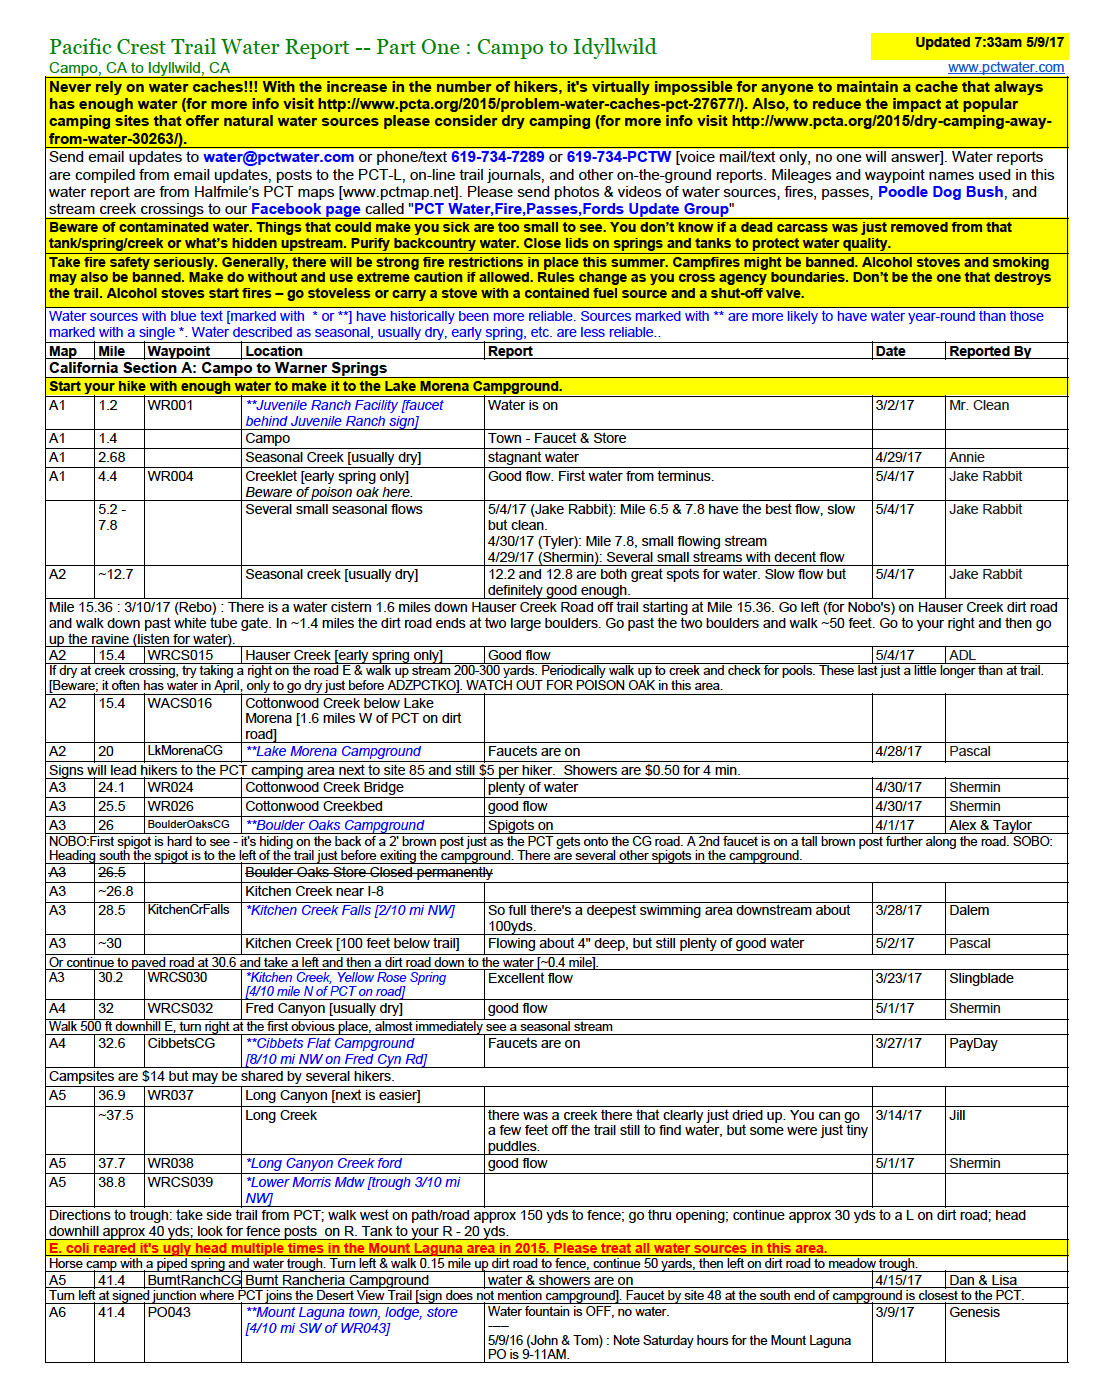 Example of a page of the Water Report. For more info, visit: https://pctwater.com/ .